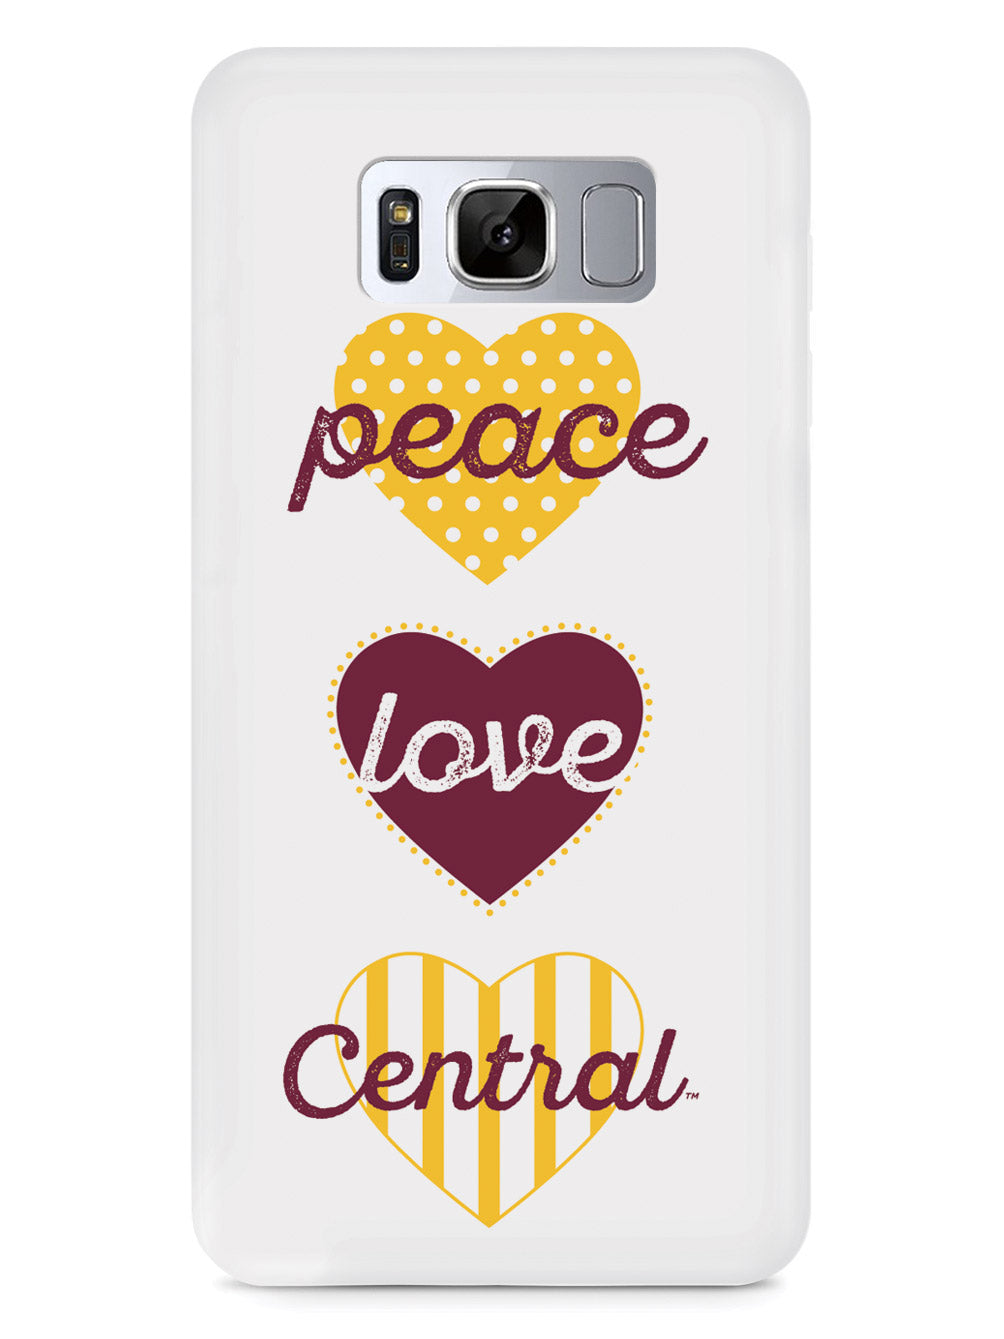 Peace, Love, Central Case